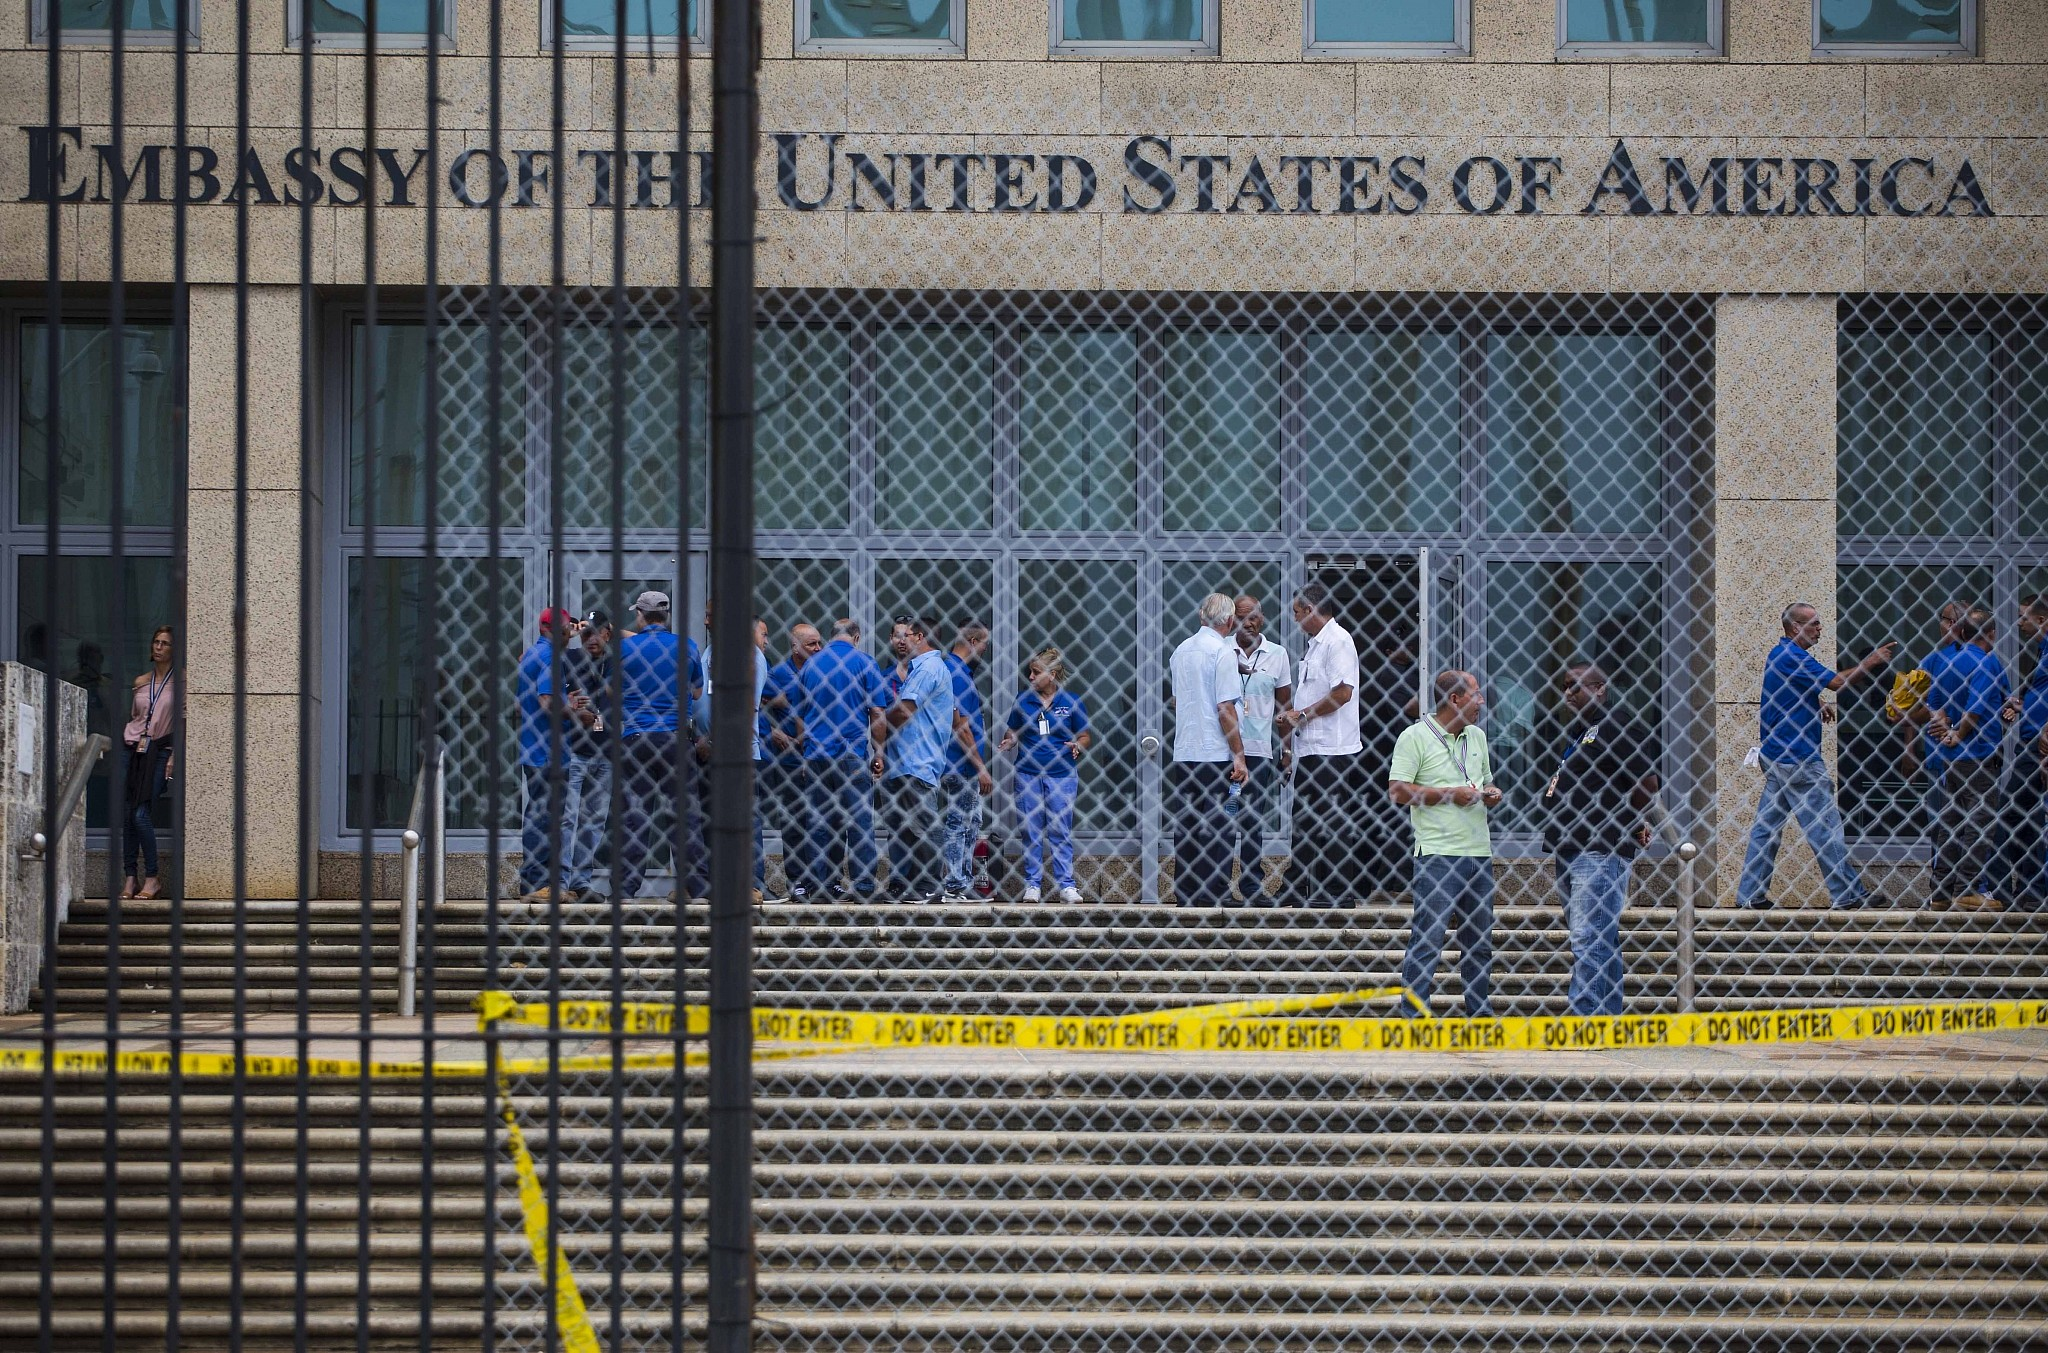 USA calls mysterious health ailments in Cuba 'attacks'